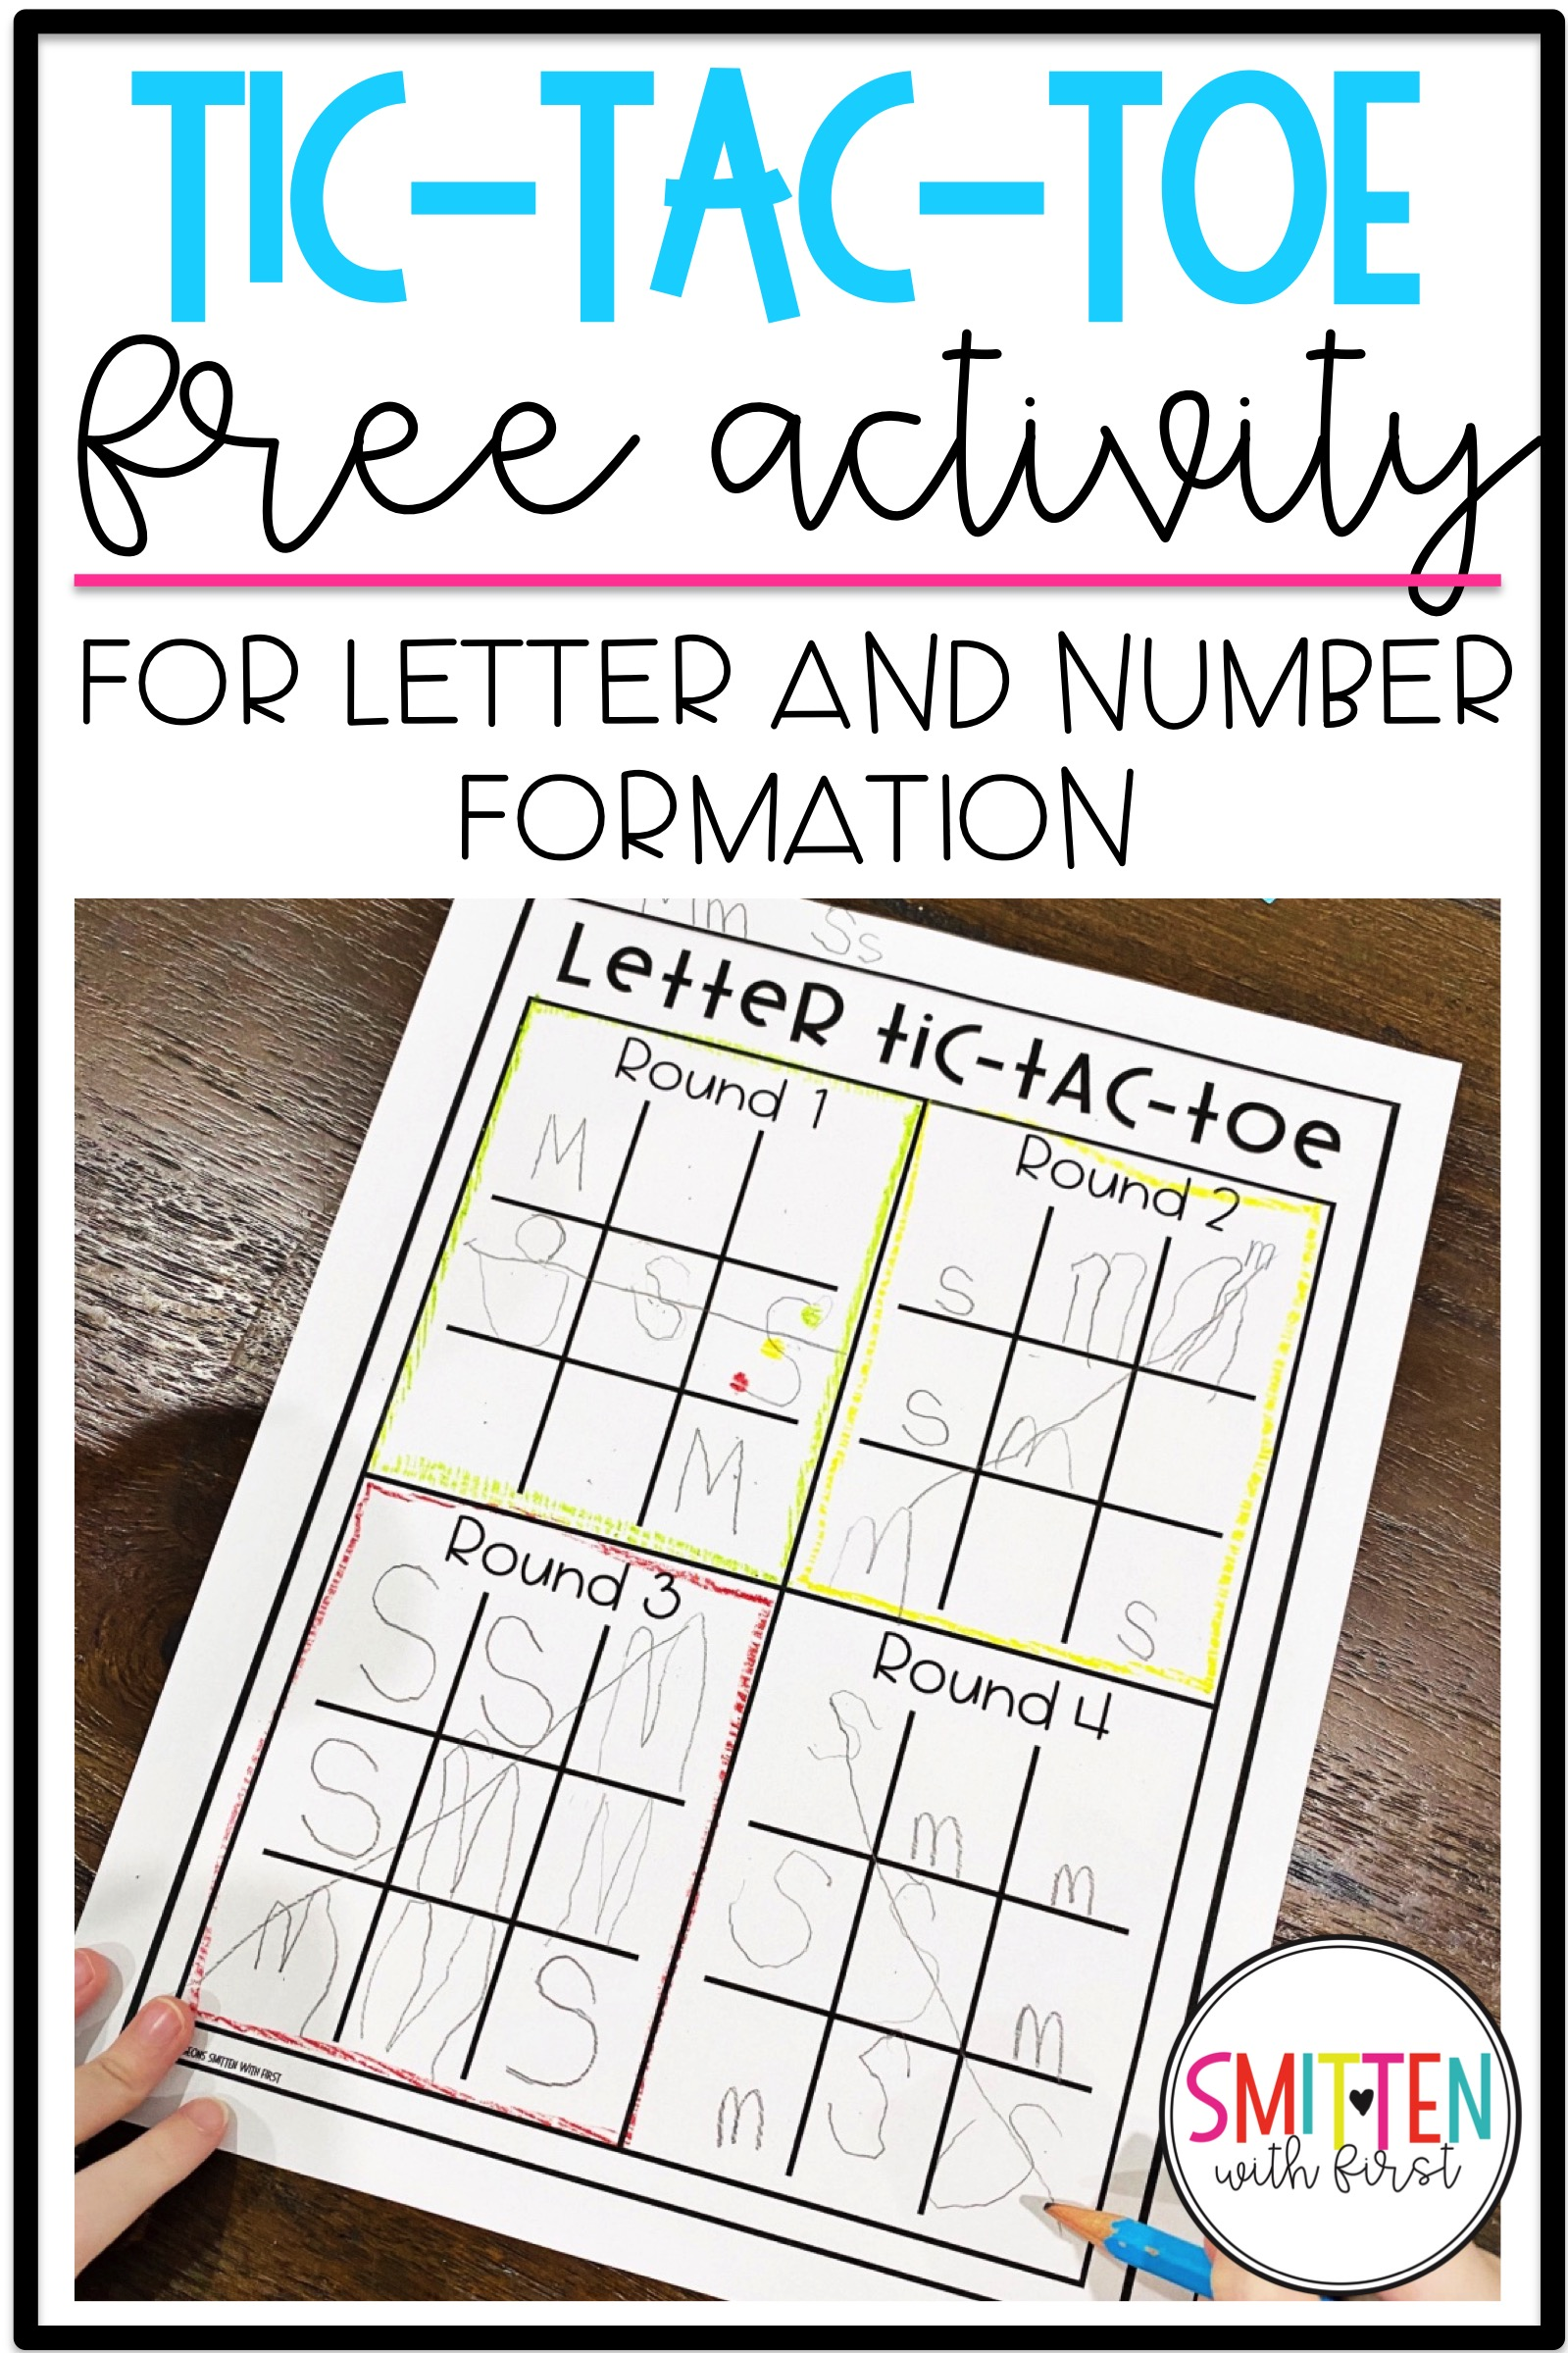 FREE Letter and Number Formation activity